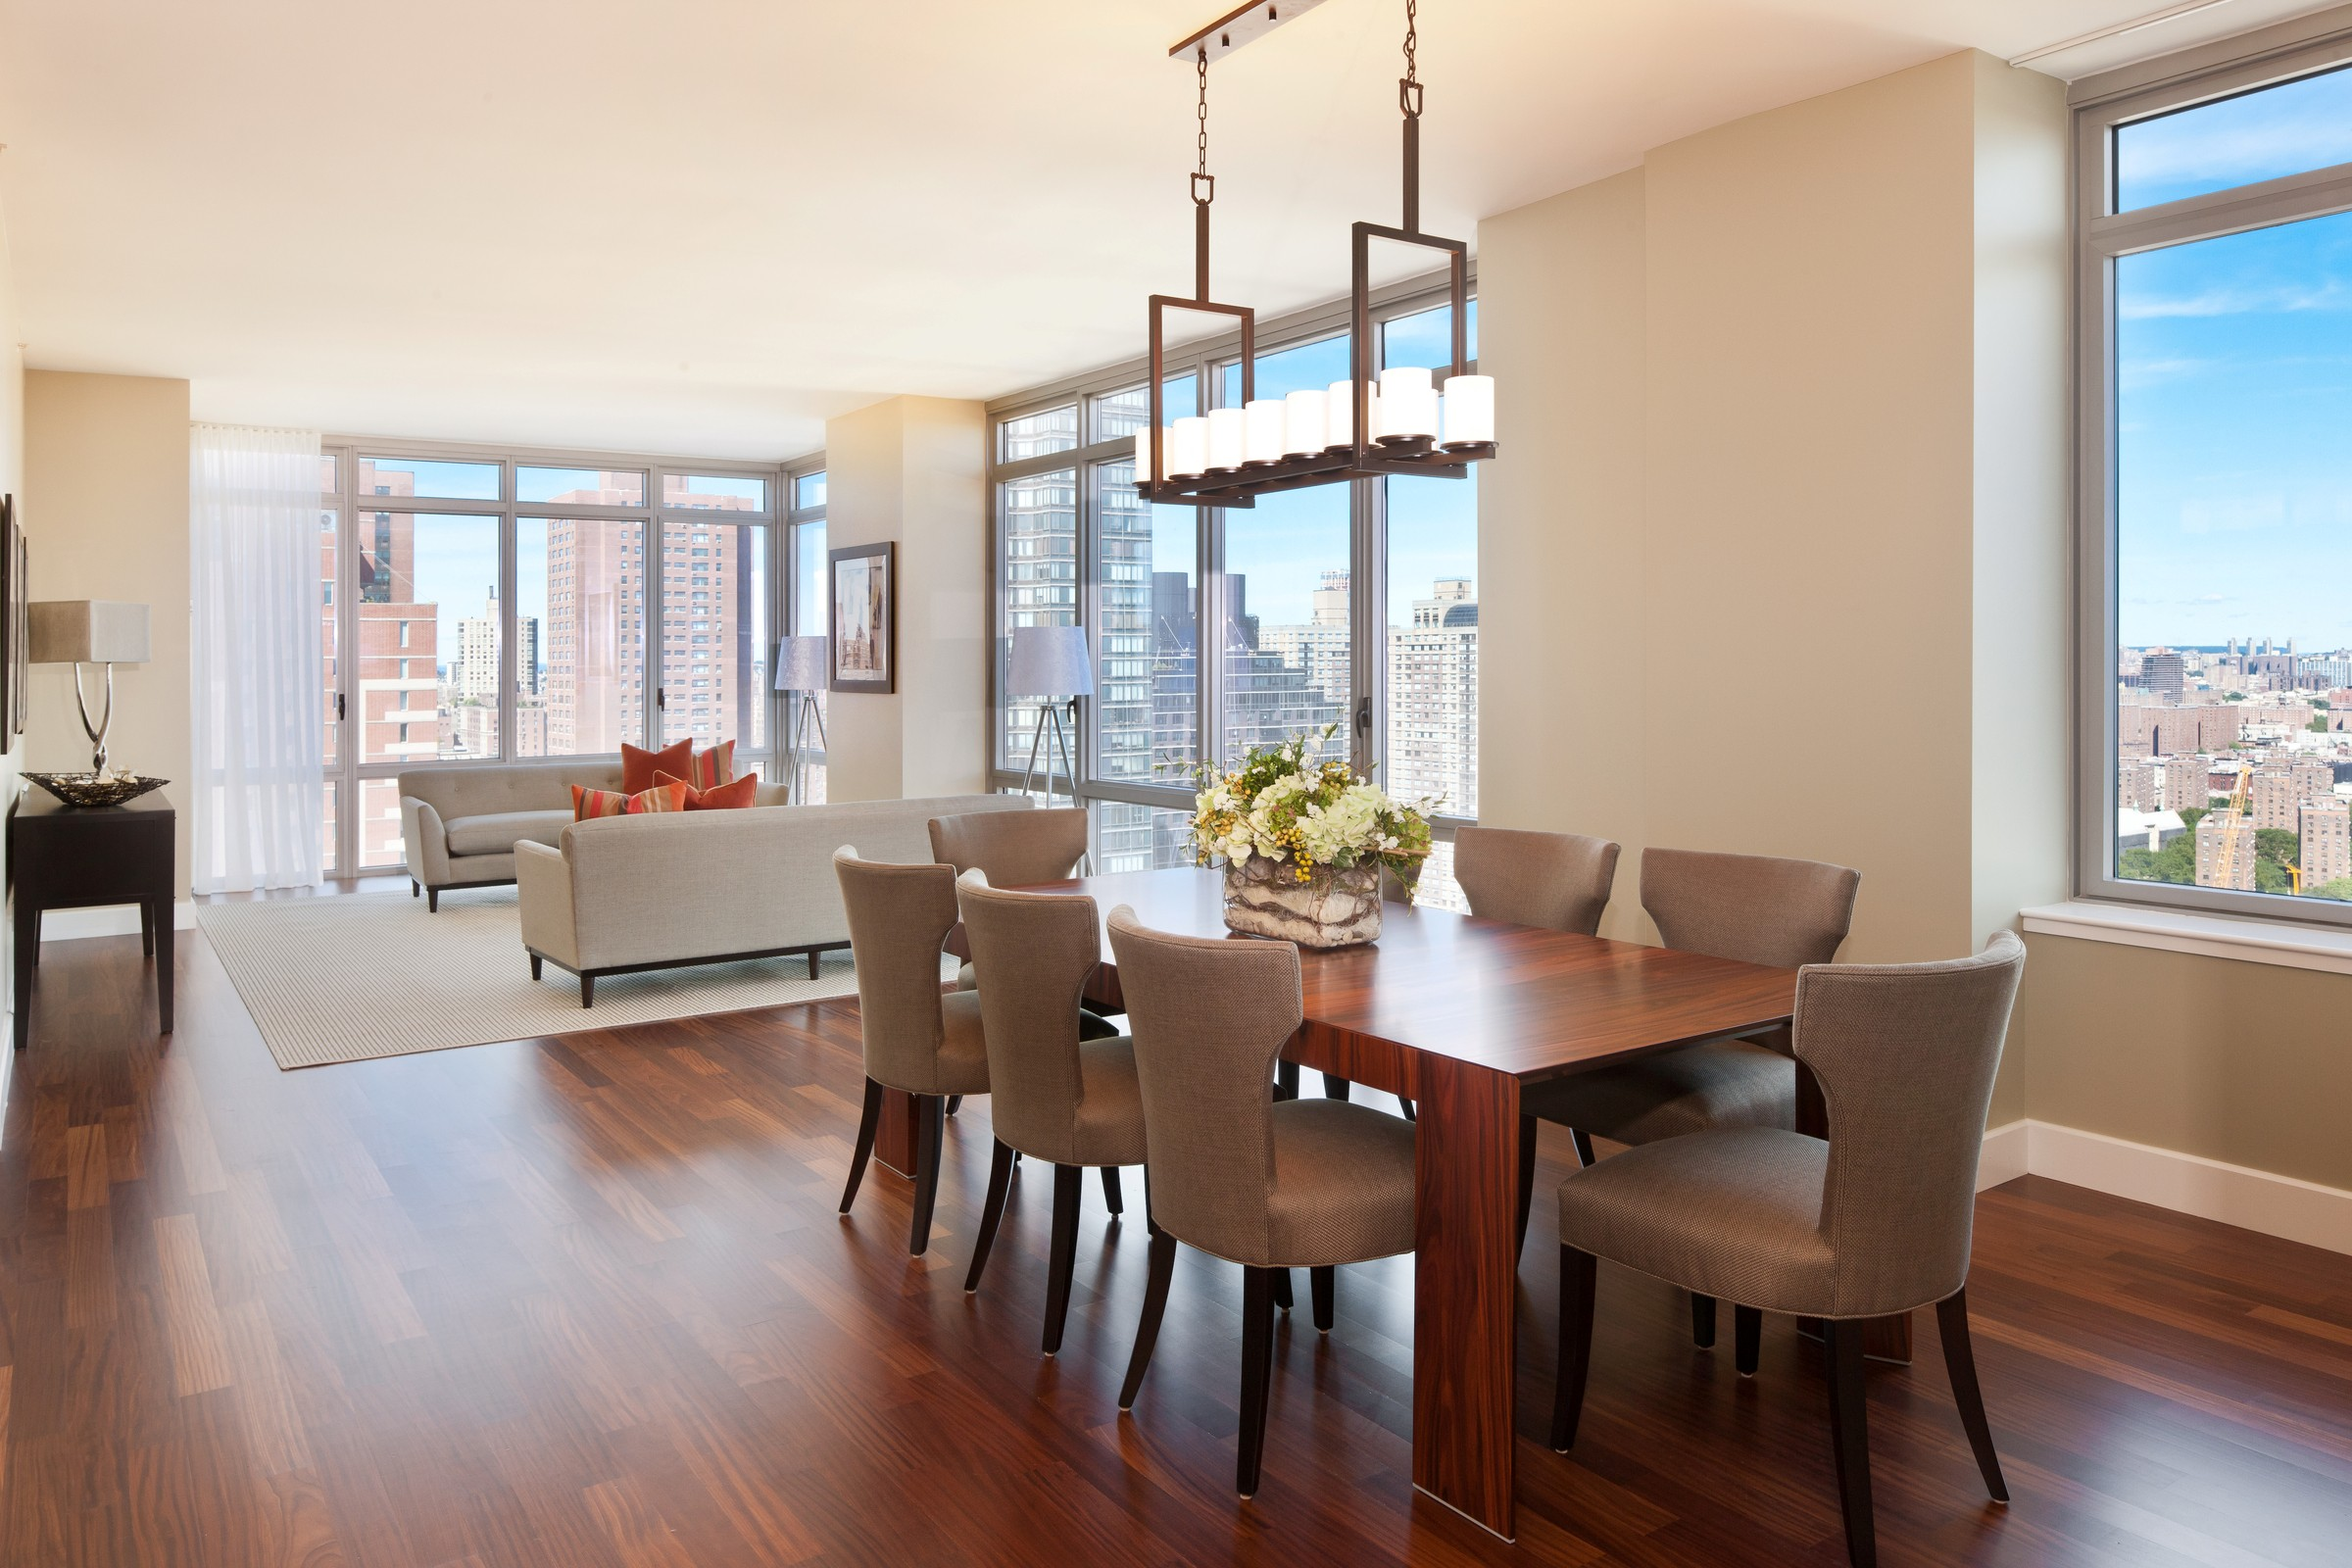 Dining Room With Rectangular Wooden Table Grey Chairs Cool Chandelier Near White Sofas Of Living